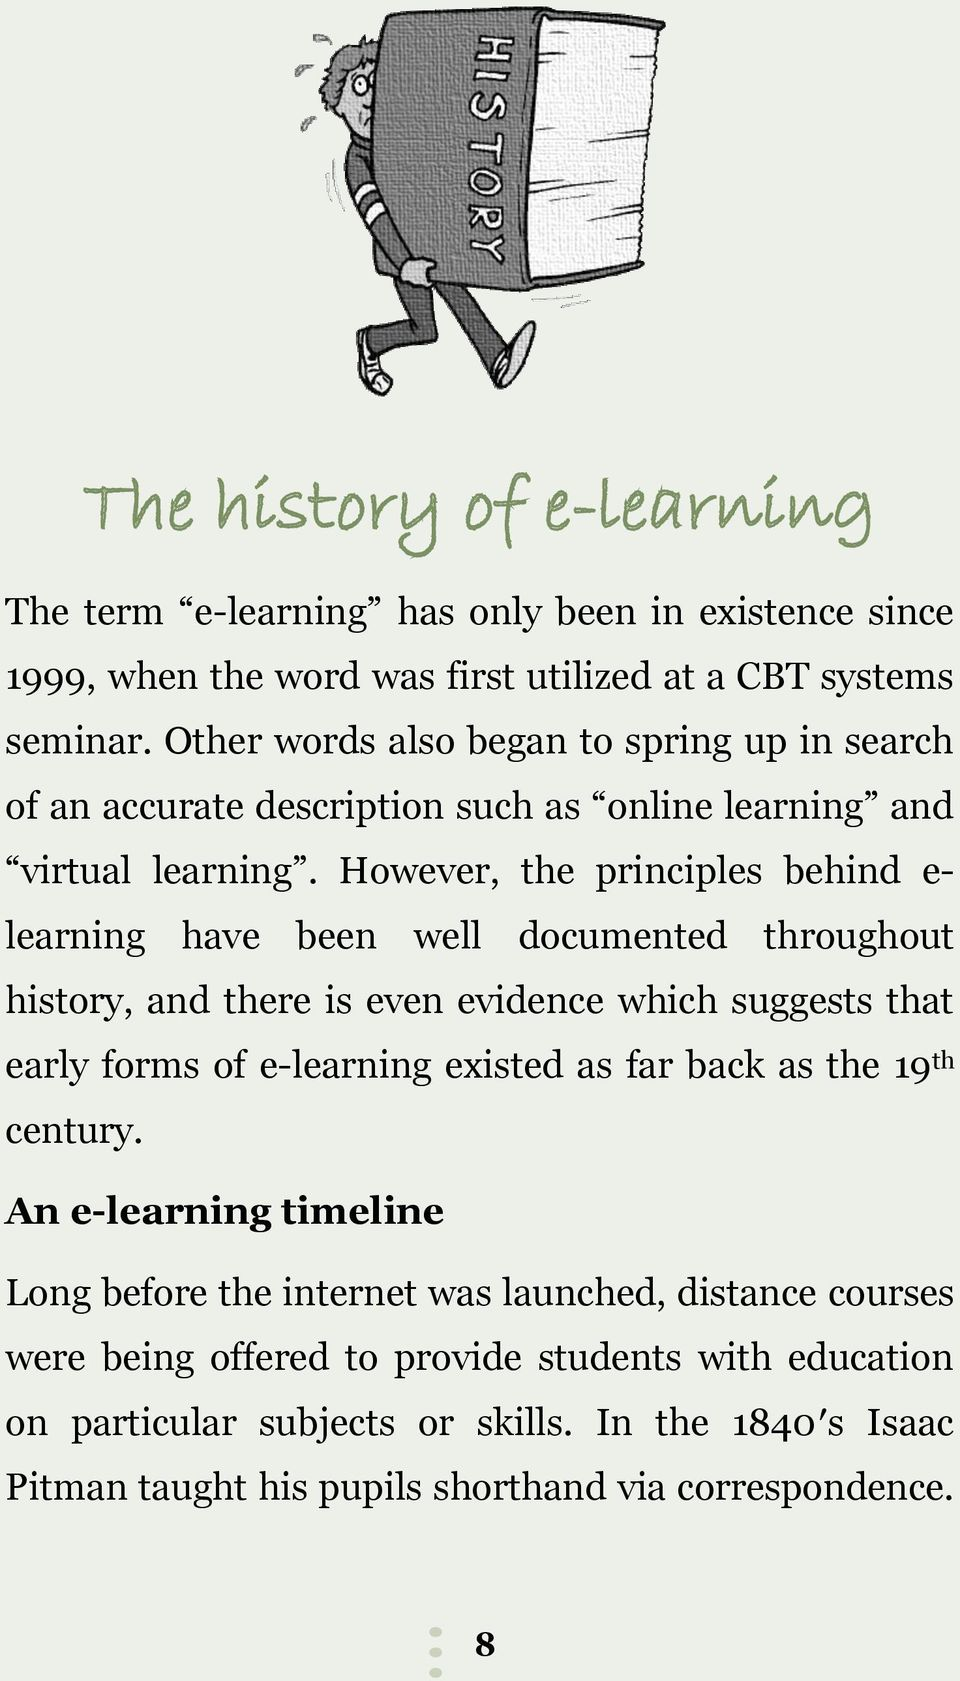 However, the principles behind e- learning have been well documented throughout history, and there is even evidence which suggests that early forms of e-learning existed as far